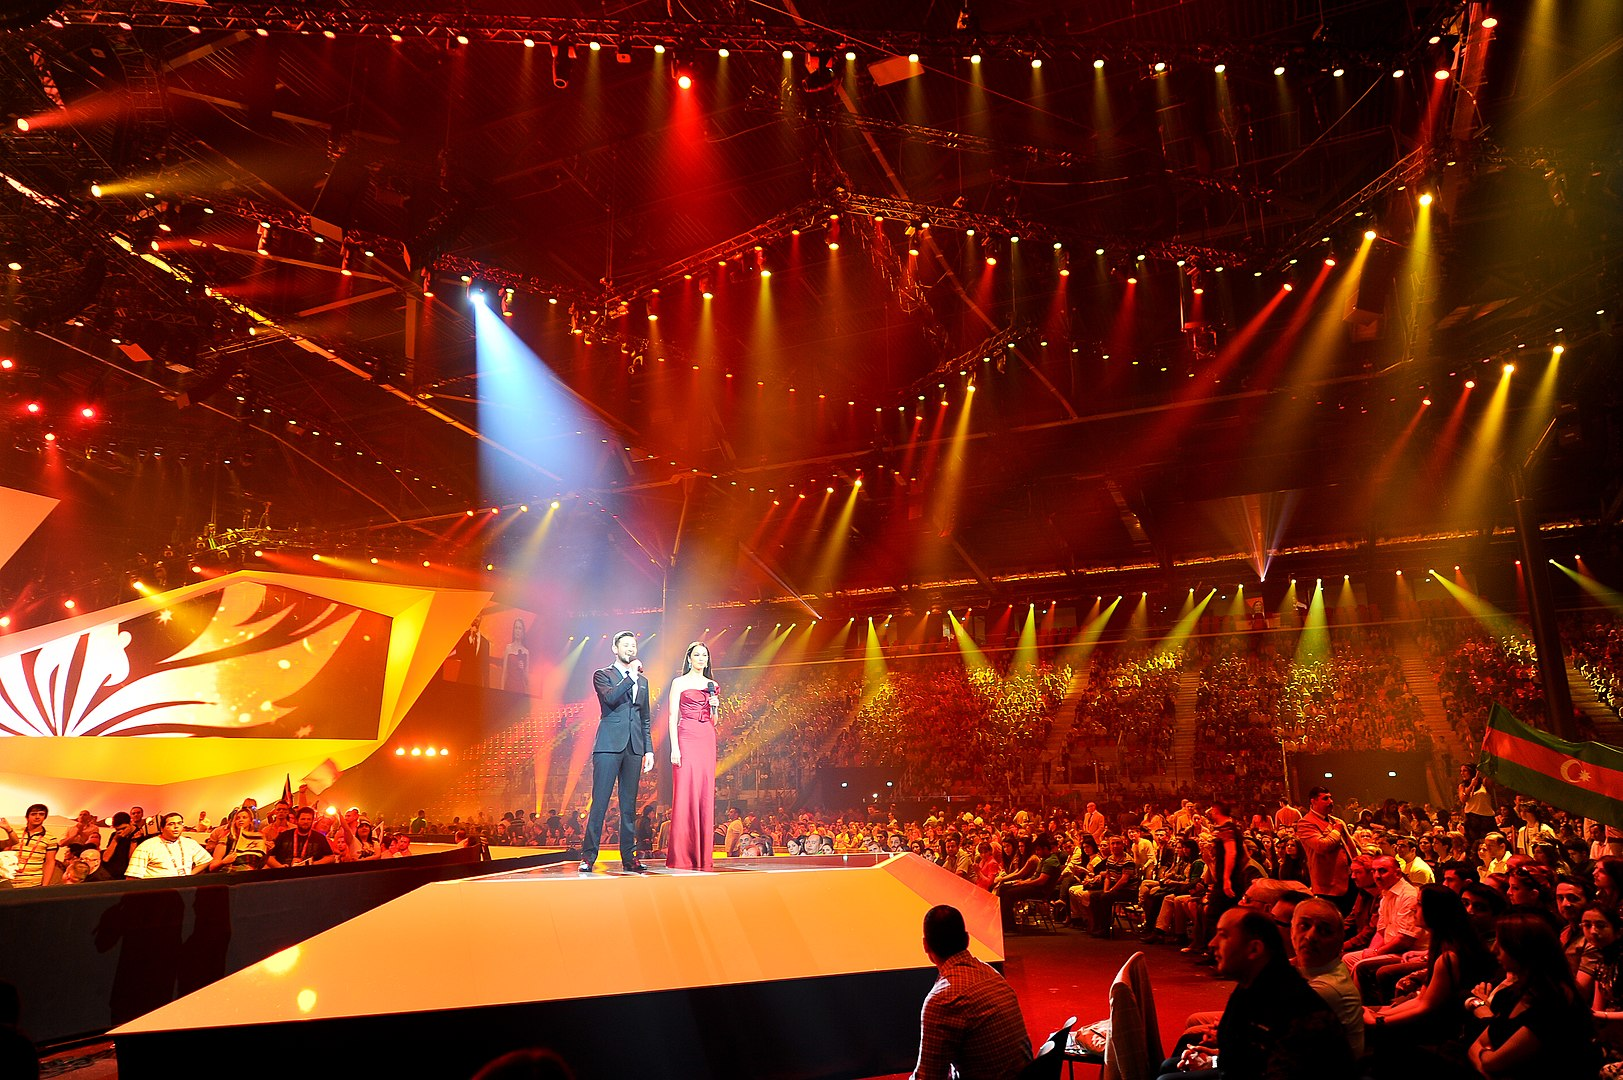 Baku Crystal Hall during the Eurovision Song Contest 2012 (Image by Vugarİbadov)